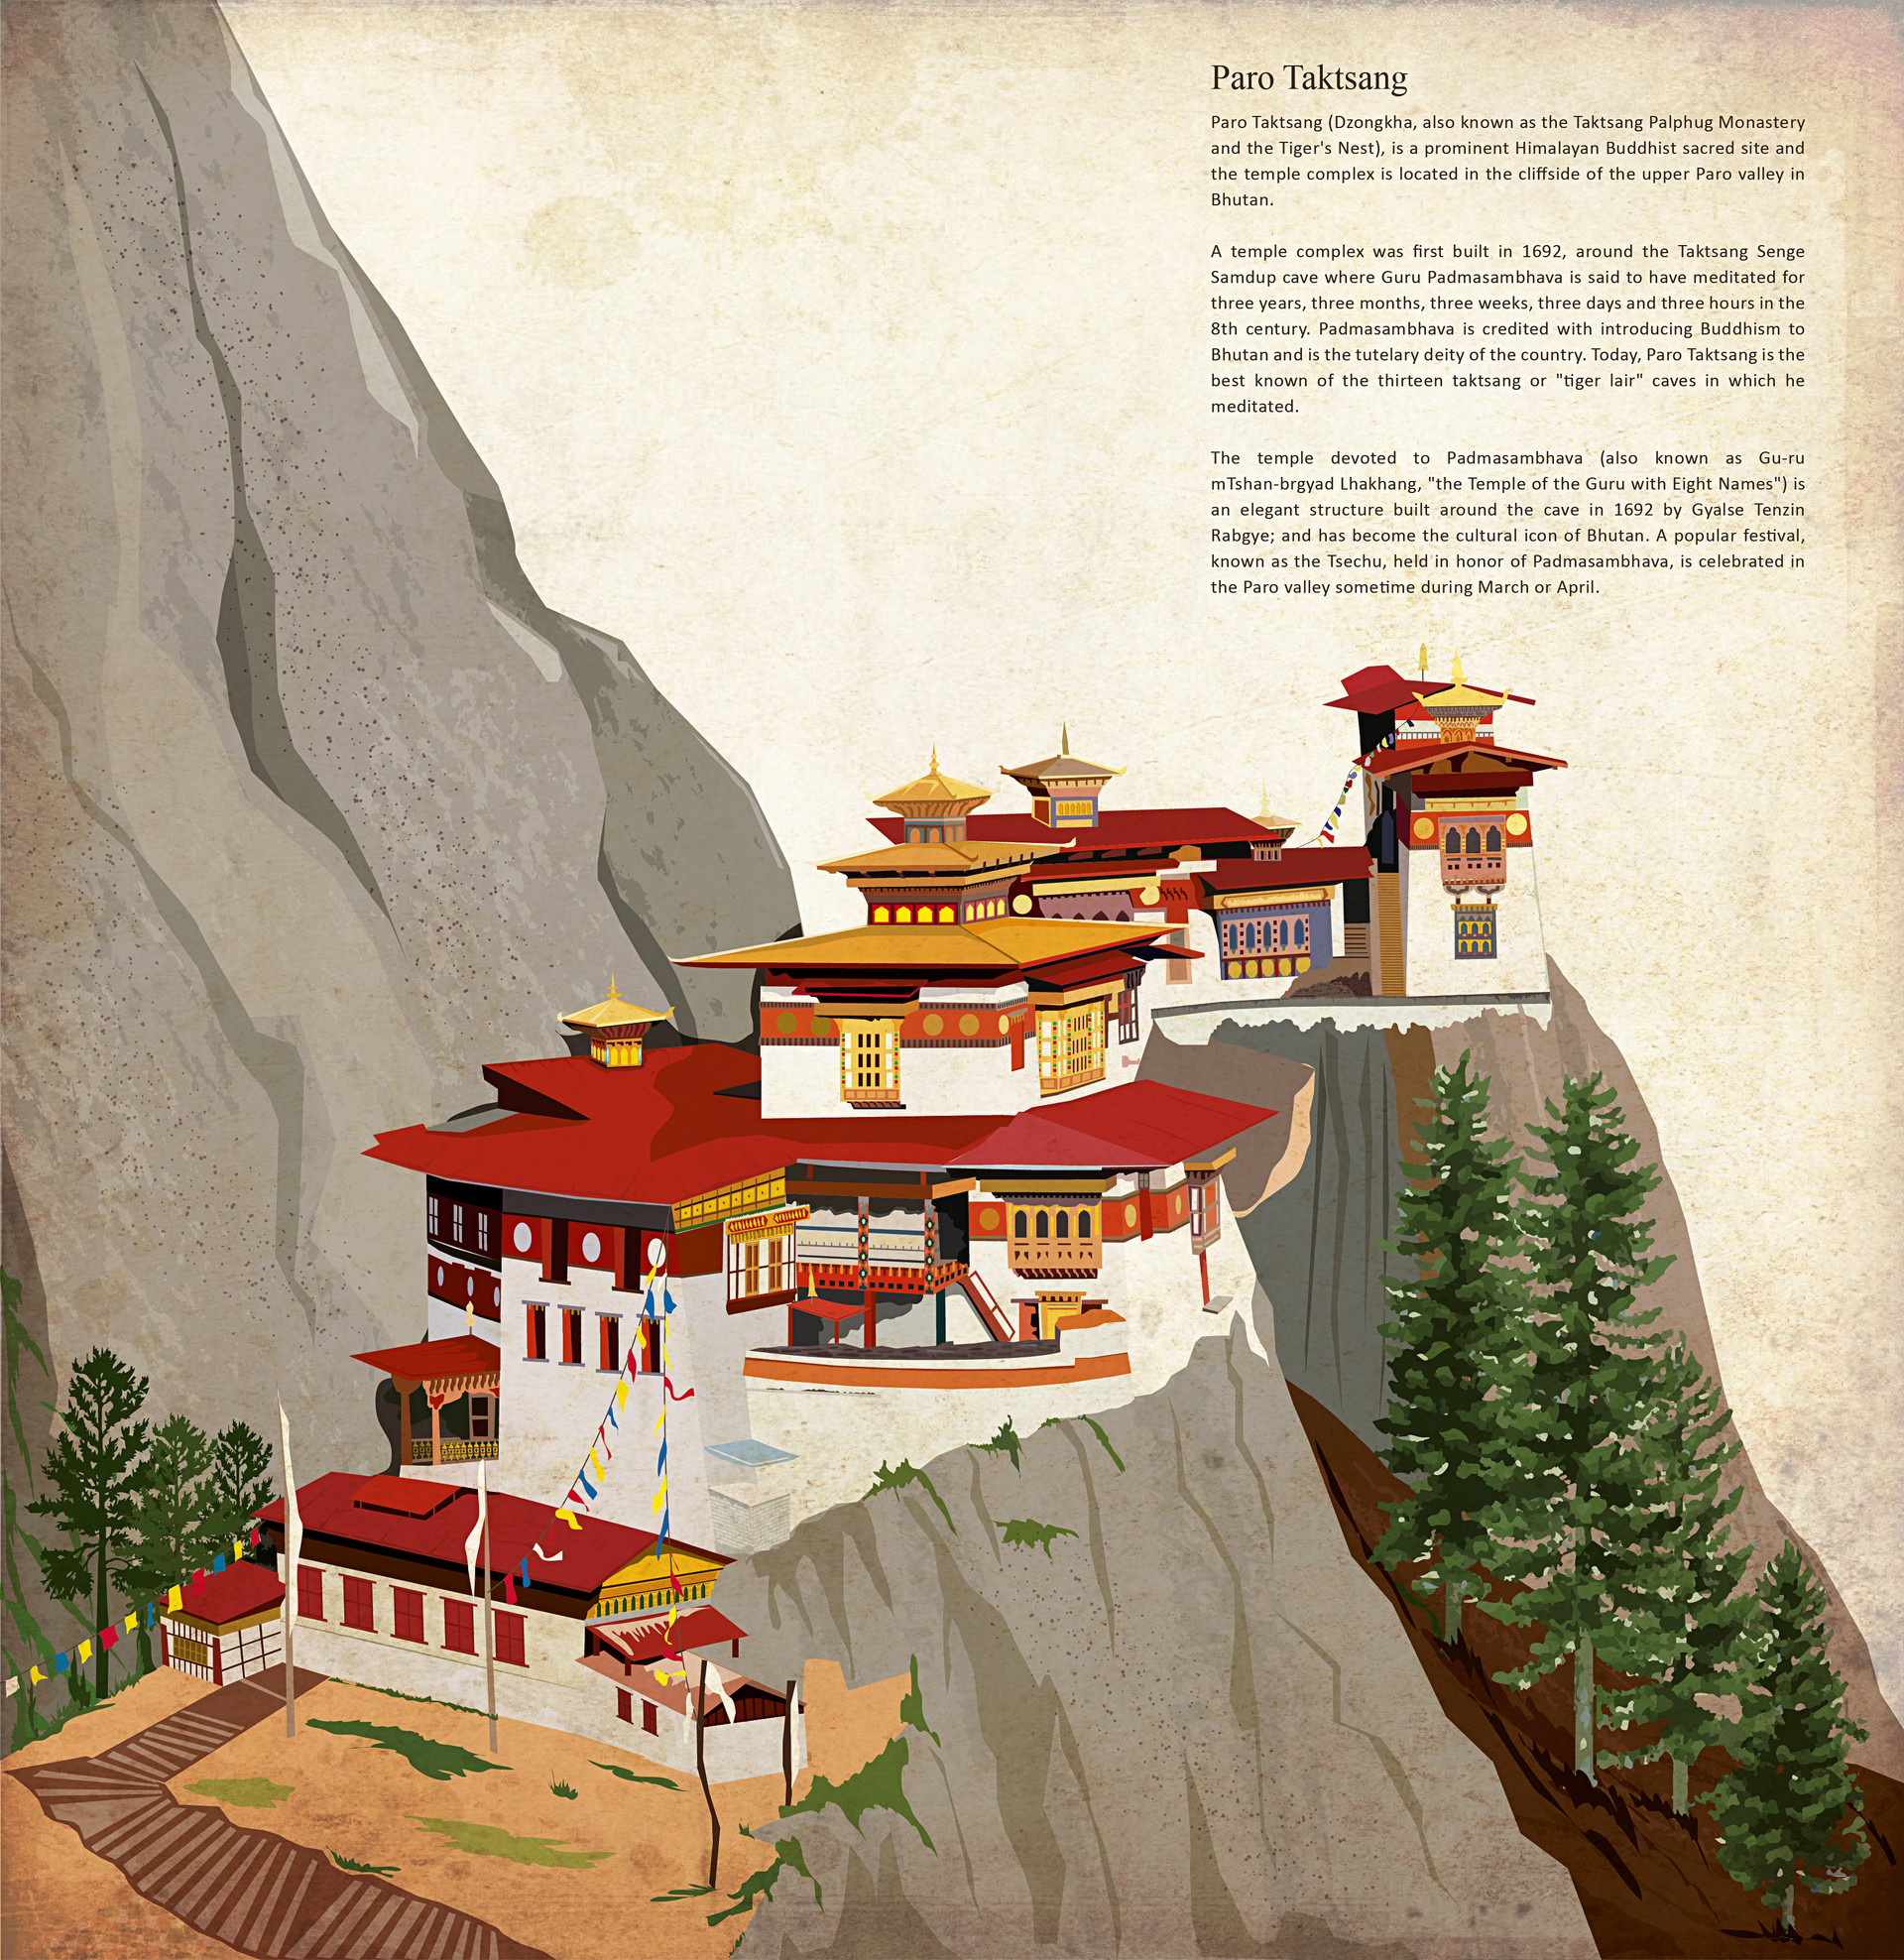 Rajesh sawant bhutan monstry 01